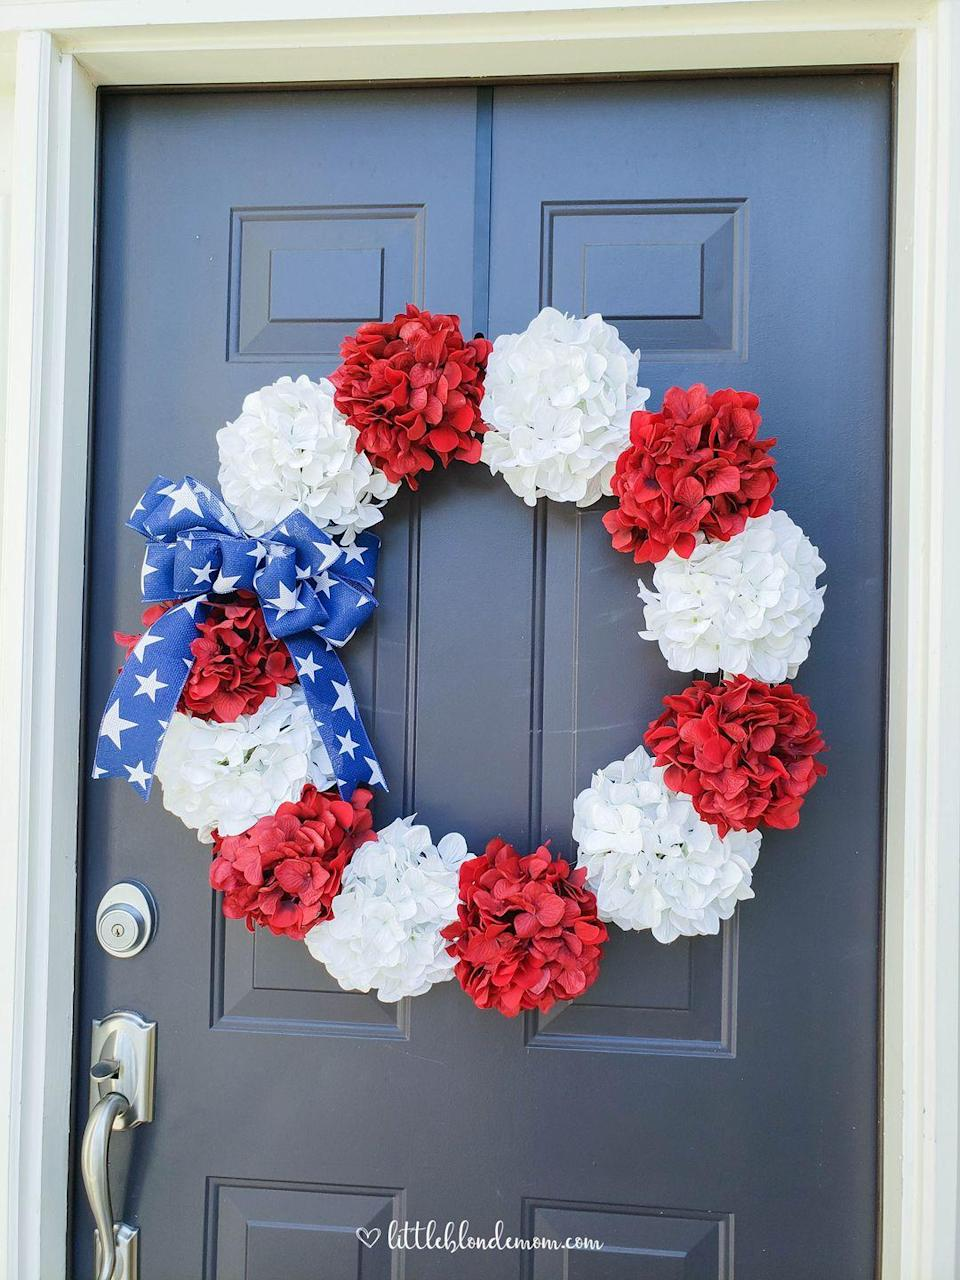 """<p>Faux flowers from Michael's take a patriotic turn with a blue-and-white star ribbon. </p><p><strong>Get the tutorial at <a href=""""http://www.littleblondemom.com/diy-patriotic-wreath/?et_fb=1"""" rel=""""nofollow noopener"""" target=""""_blank"""" data-ylk=""""slk:Little Blonde Mom"""" class=""""link rapid-noclick-resp"""">Little Blonde Mom</a>. </strong></p><p><a class=""""link rapid-noclick-resp"""" href=""""https://www.amazon.com/PPBAO-Hydrangea-Artificial-Hydrangeas-Decorations/dp/B08TVTSVW2/ref=sr_1_10?dchild=1&keywords=red+hydrangea&qid=1622038148&sr=8-10&tag=syn-yahoo-20&ascsubtag=%5Bartid%7C10050.g.4464%5Bsrc%7Cyahoo-us"""" rel=""""nofollow noopener"""" target=""""_blank"""" data-ylk=""""slk:SHOP FAUX FLOWERS"""">SHOP FAUX FLOWERS </a></p>"""